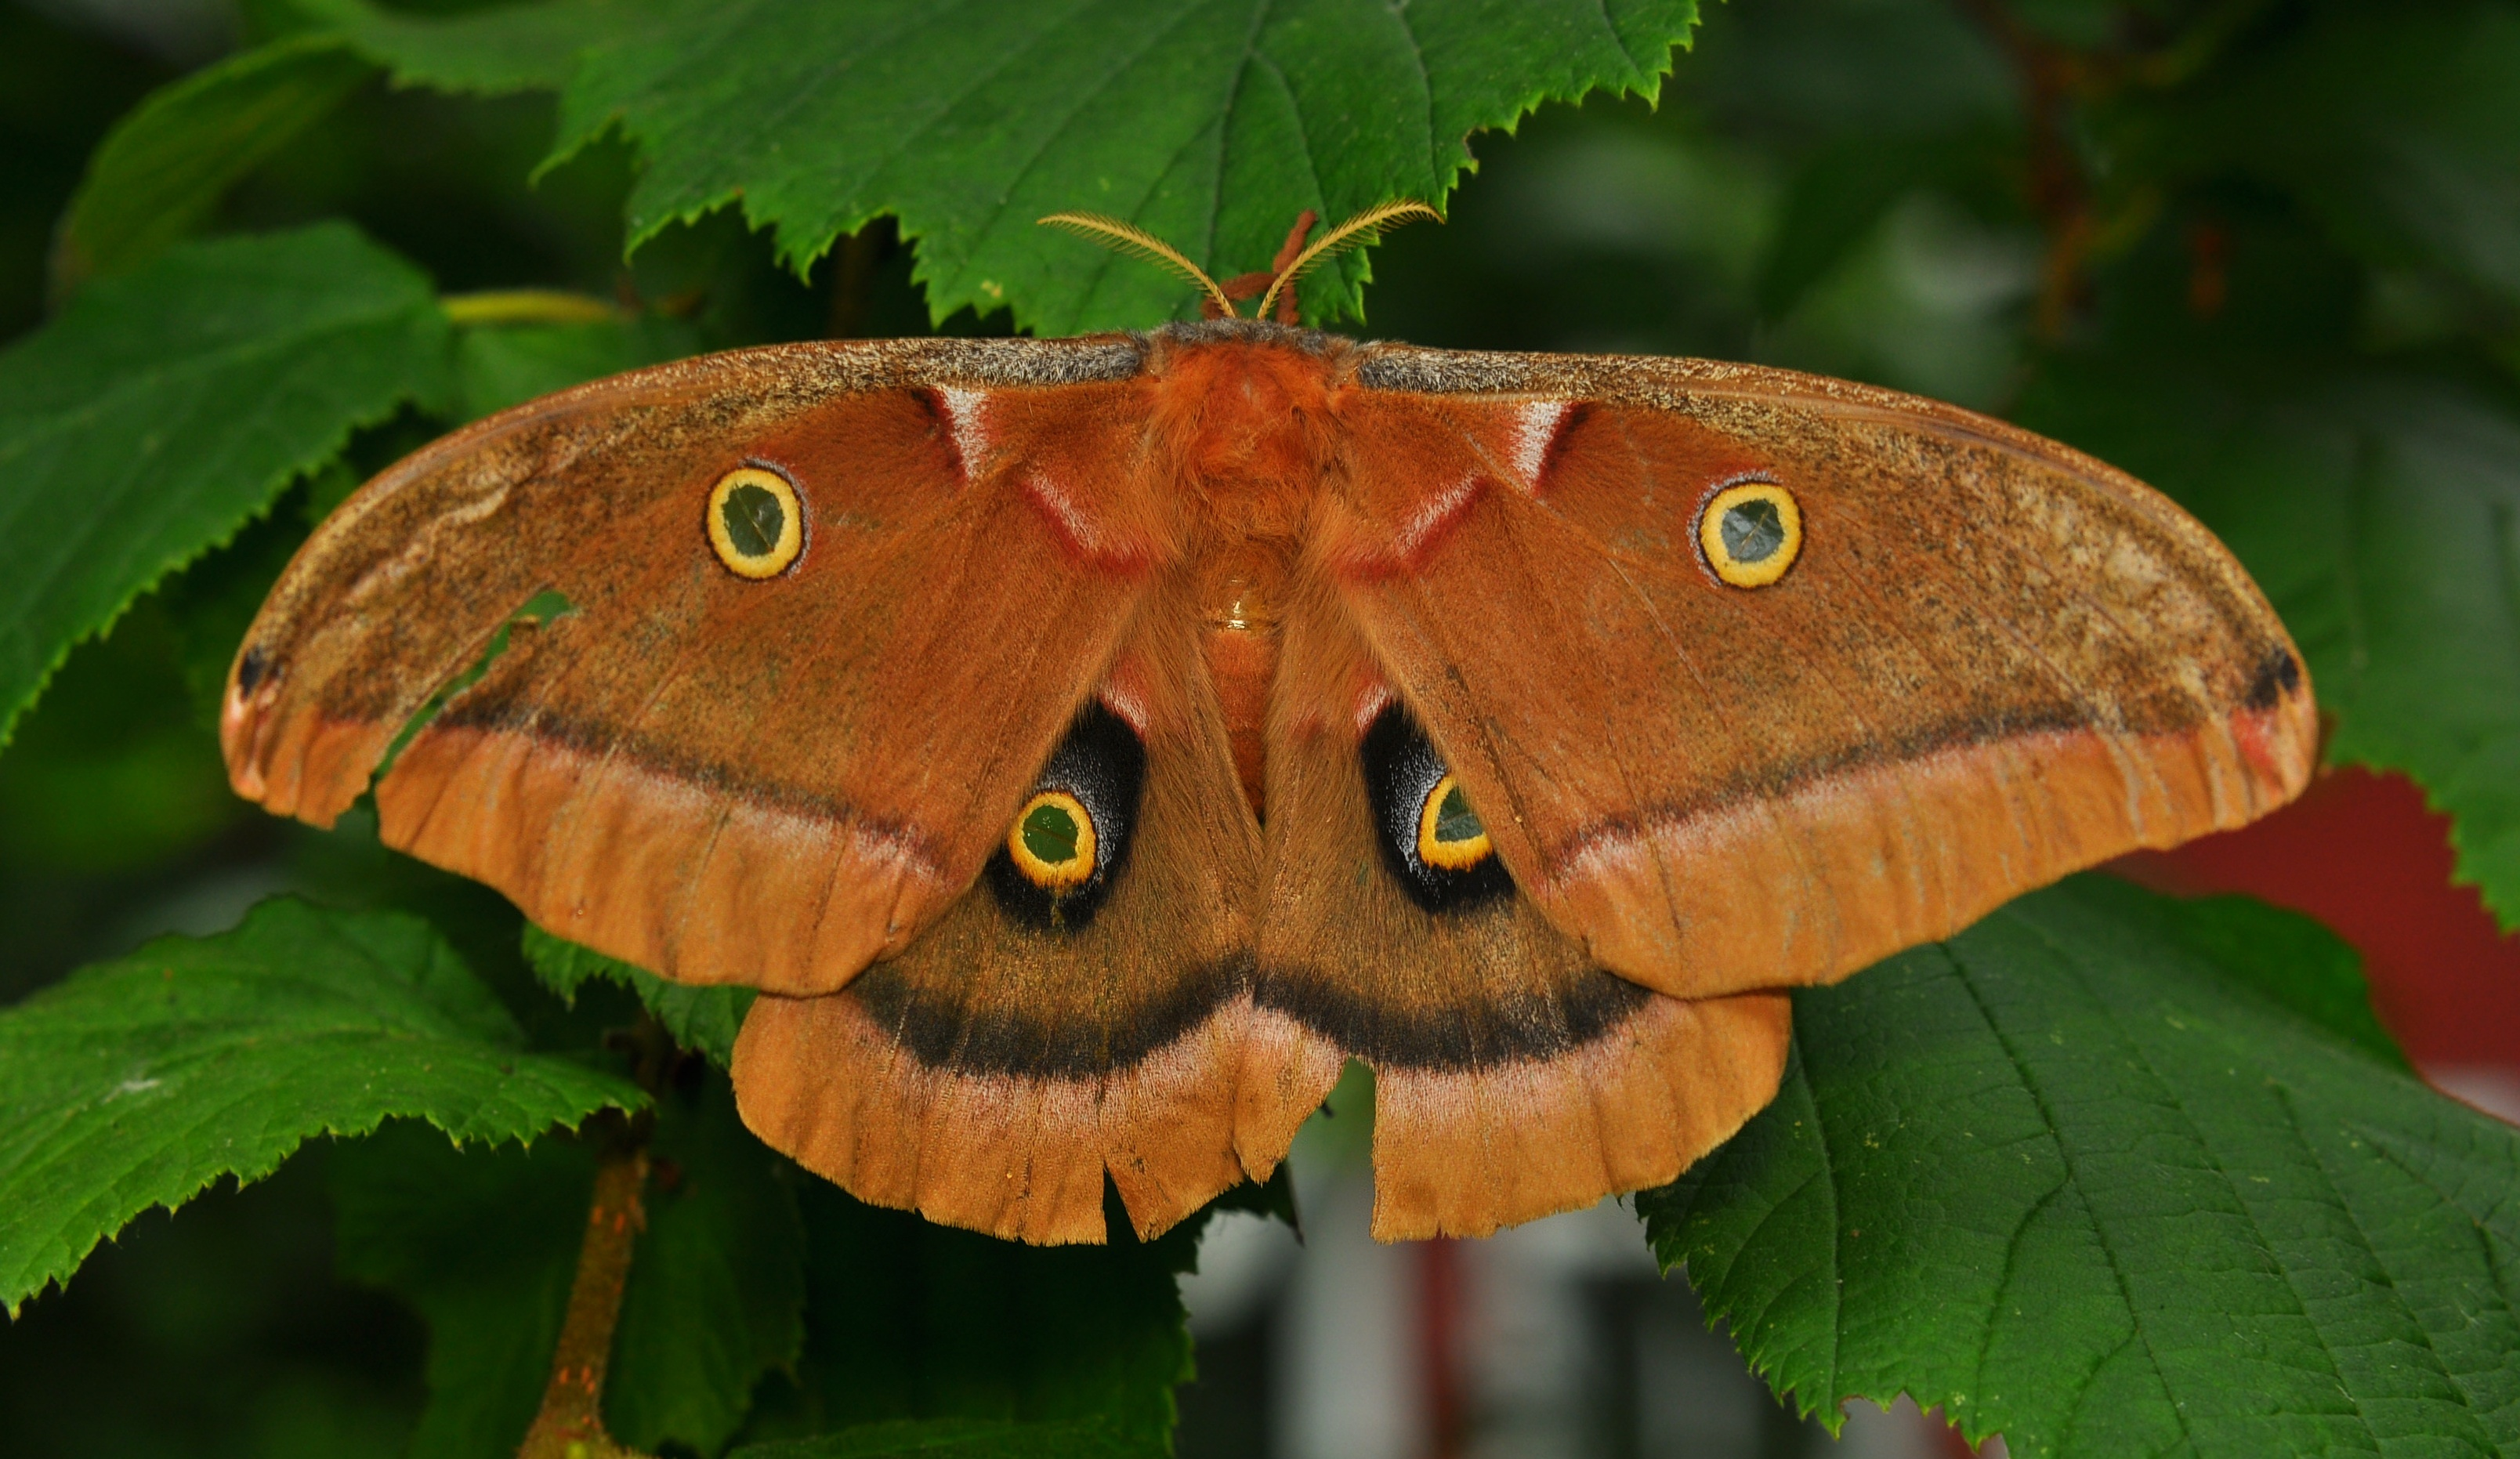 Polyphemus Moth (Antheraea polyphemus) - Facts and Pictures